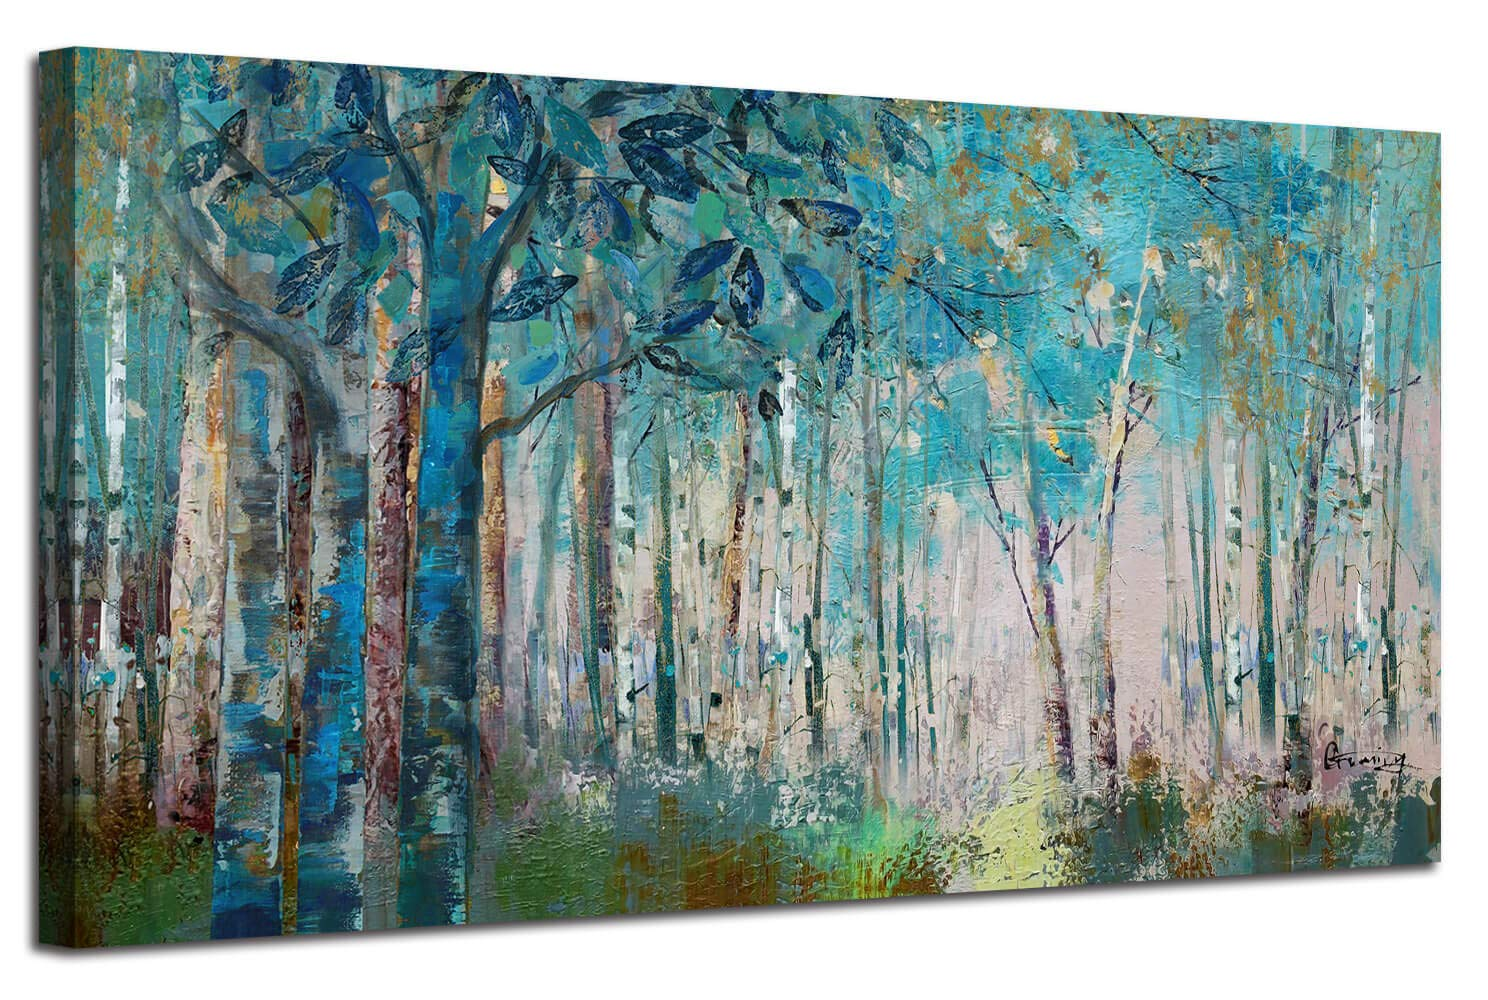 """Ardemy Canvas Wall Art Blue Tree Forest Landscape Picture Prints, Modern Birch Trees Nature Woods Abstract Painting Artwork Extra Large Framed for Home Office Living Room Bedroom Decor, 60""""x30"""""""